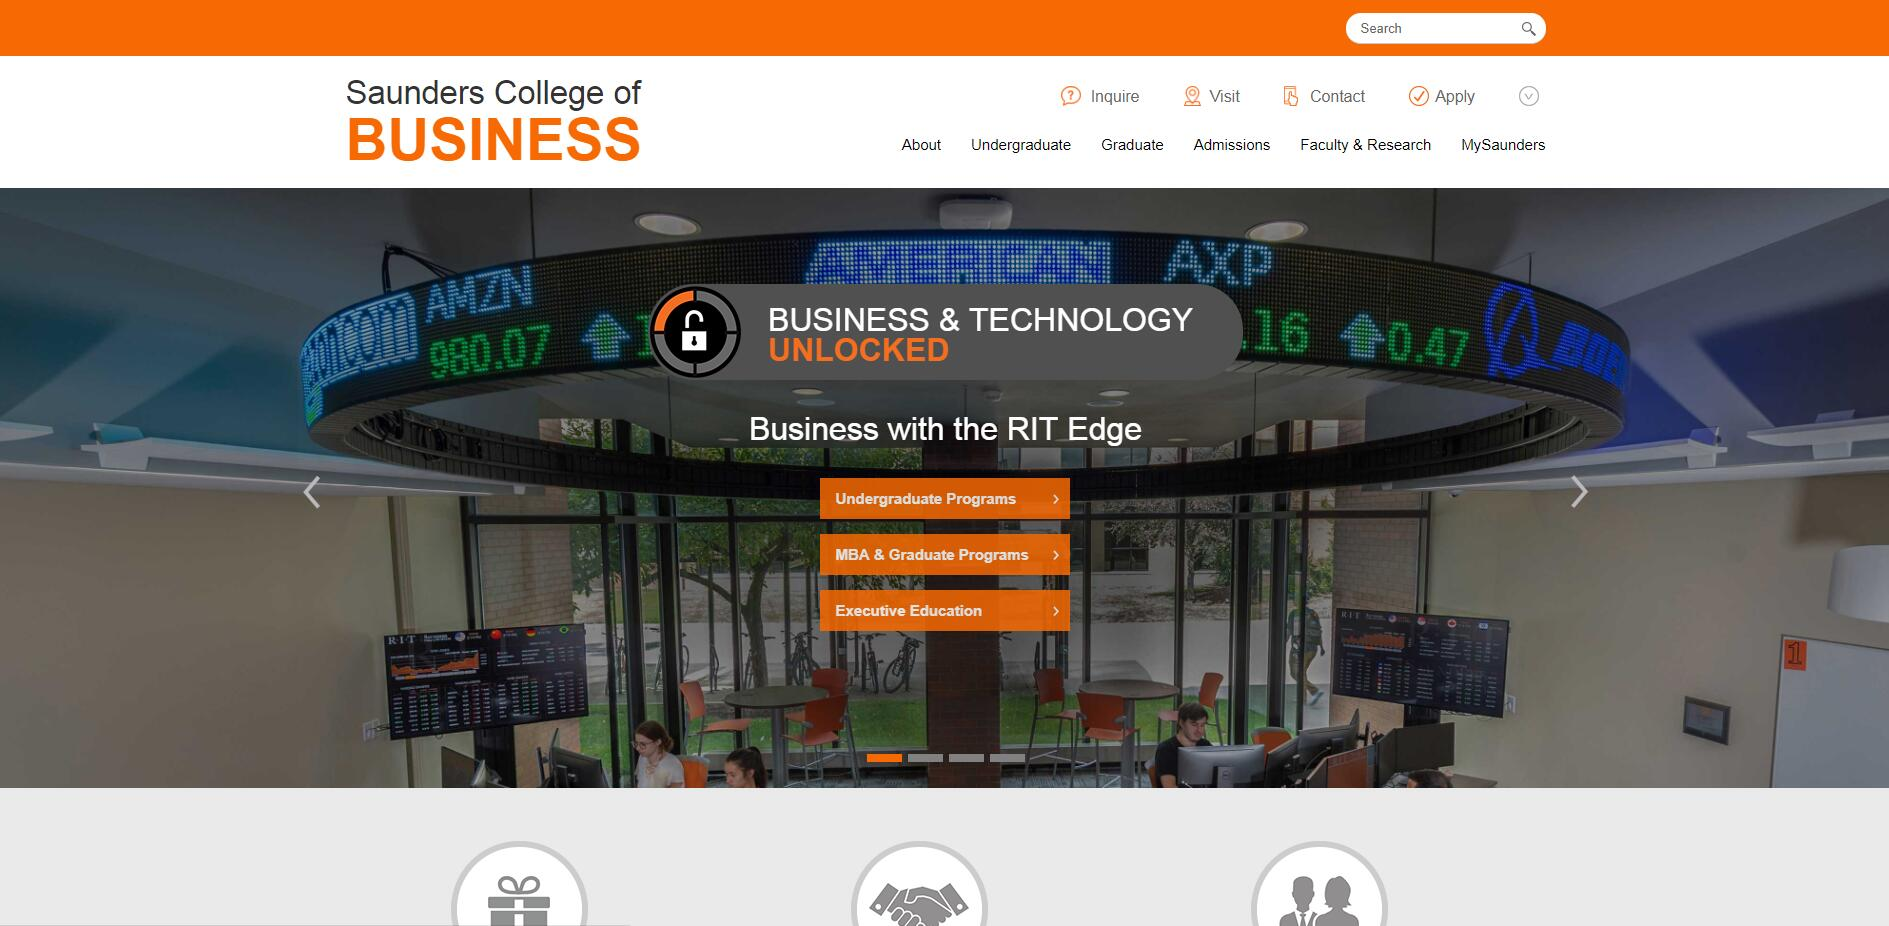 The E. Philip Saunders College of Business at Rochester Institute of Technology